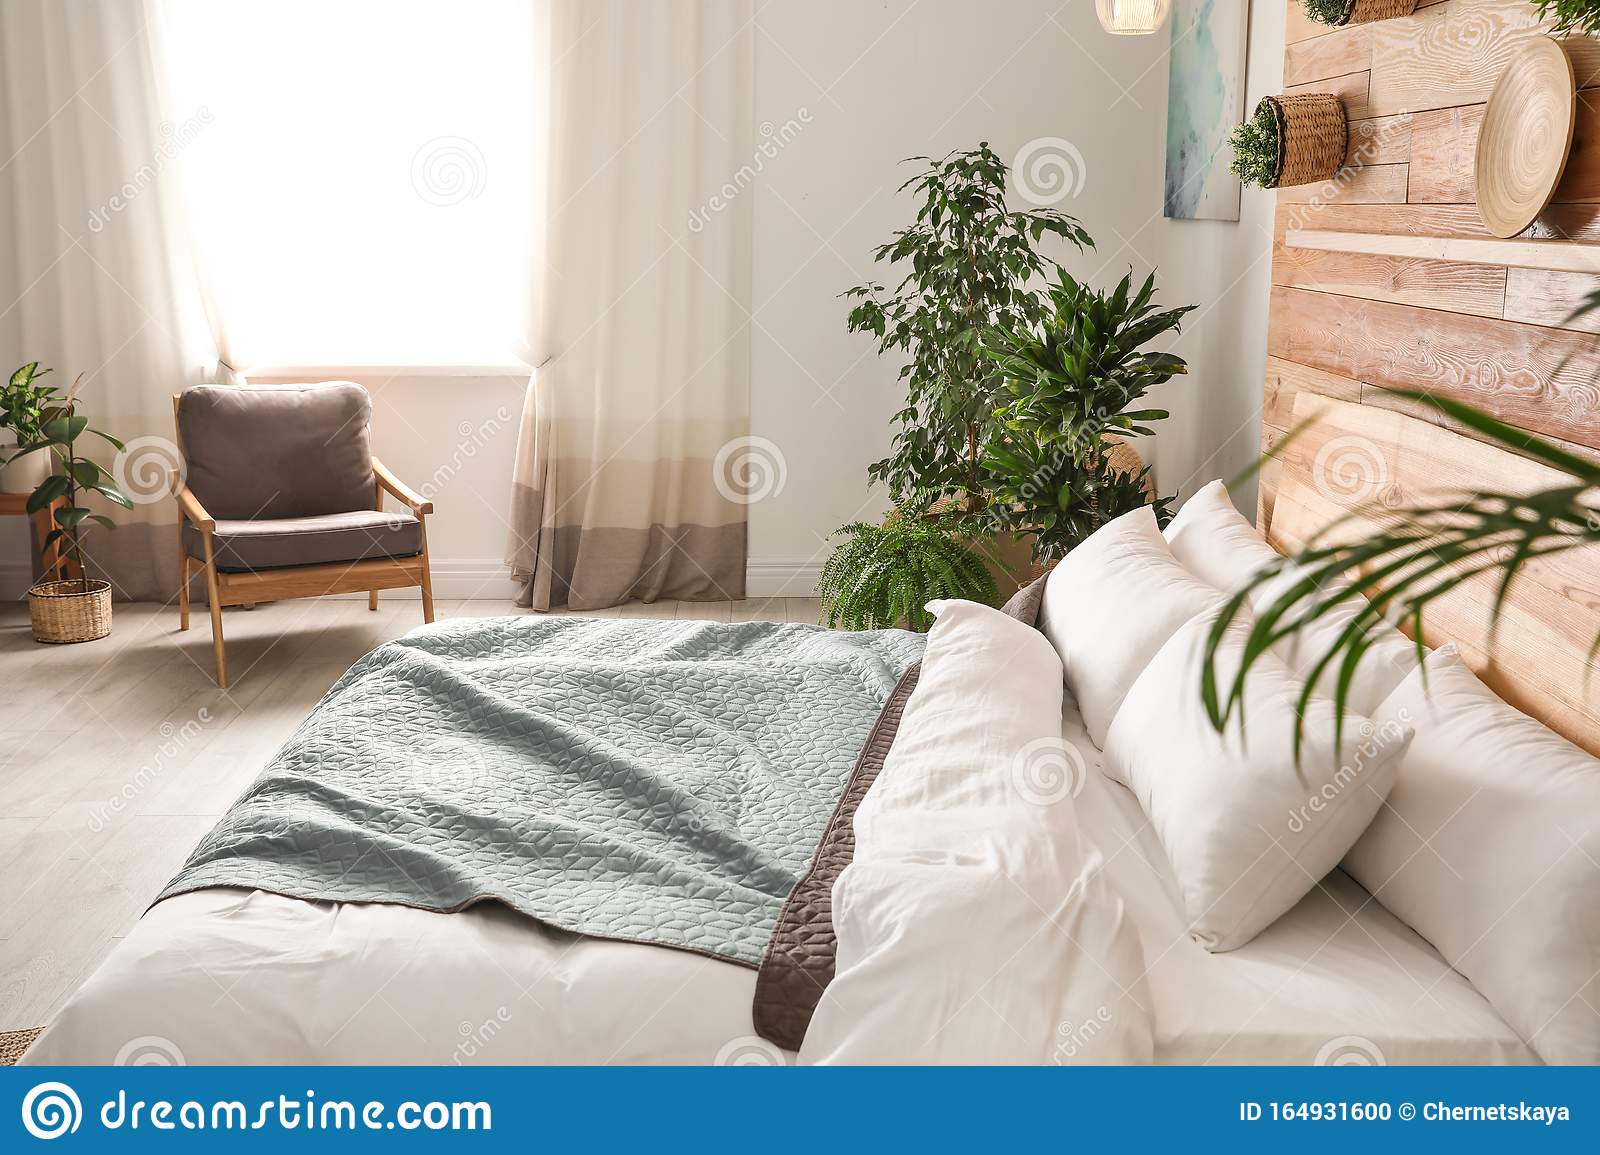 Cozy Bedroom Decorated With Plants Home Design Ideas Stock Photo Image Of Fresh Decor 164931600